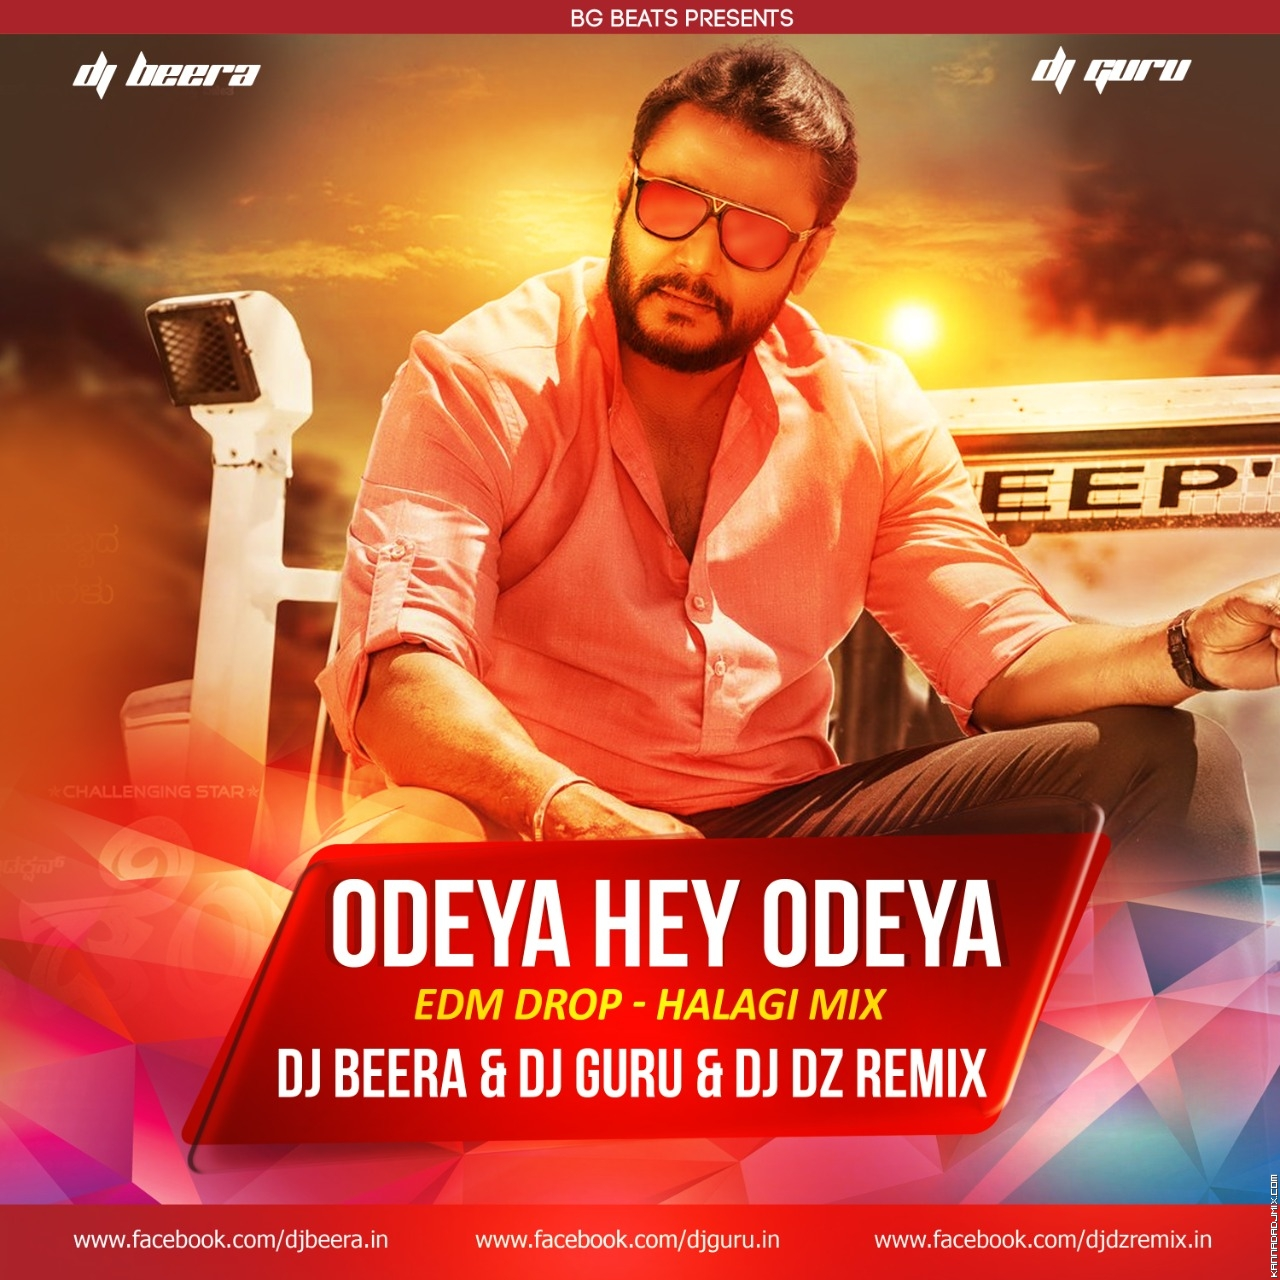 ODEYA HEY ODEYA EDM DROP HALGI MIX DJ BEERA   DJ GURU.mp3